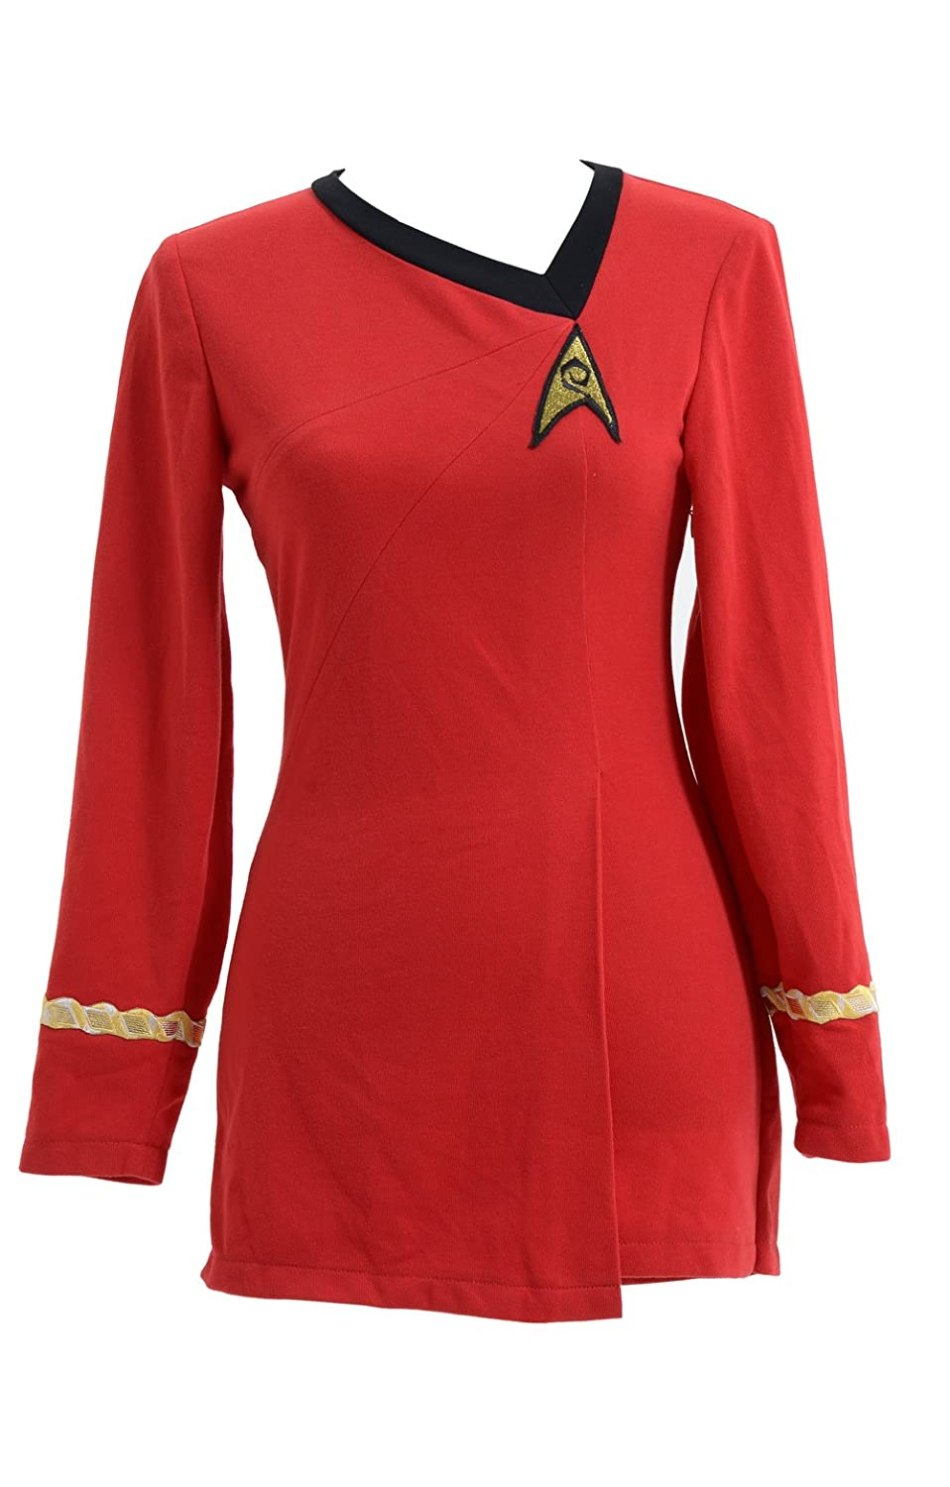 Star Trek Costume Cotton Female Duty Uniform Red